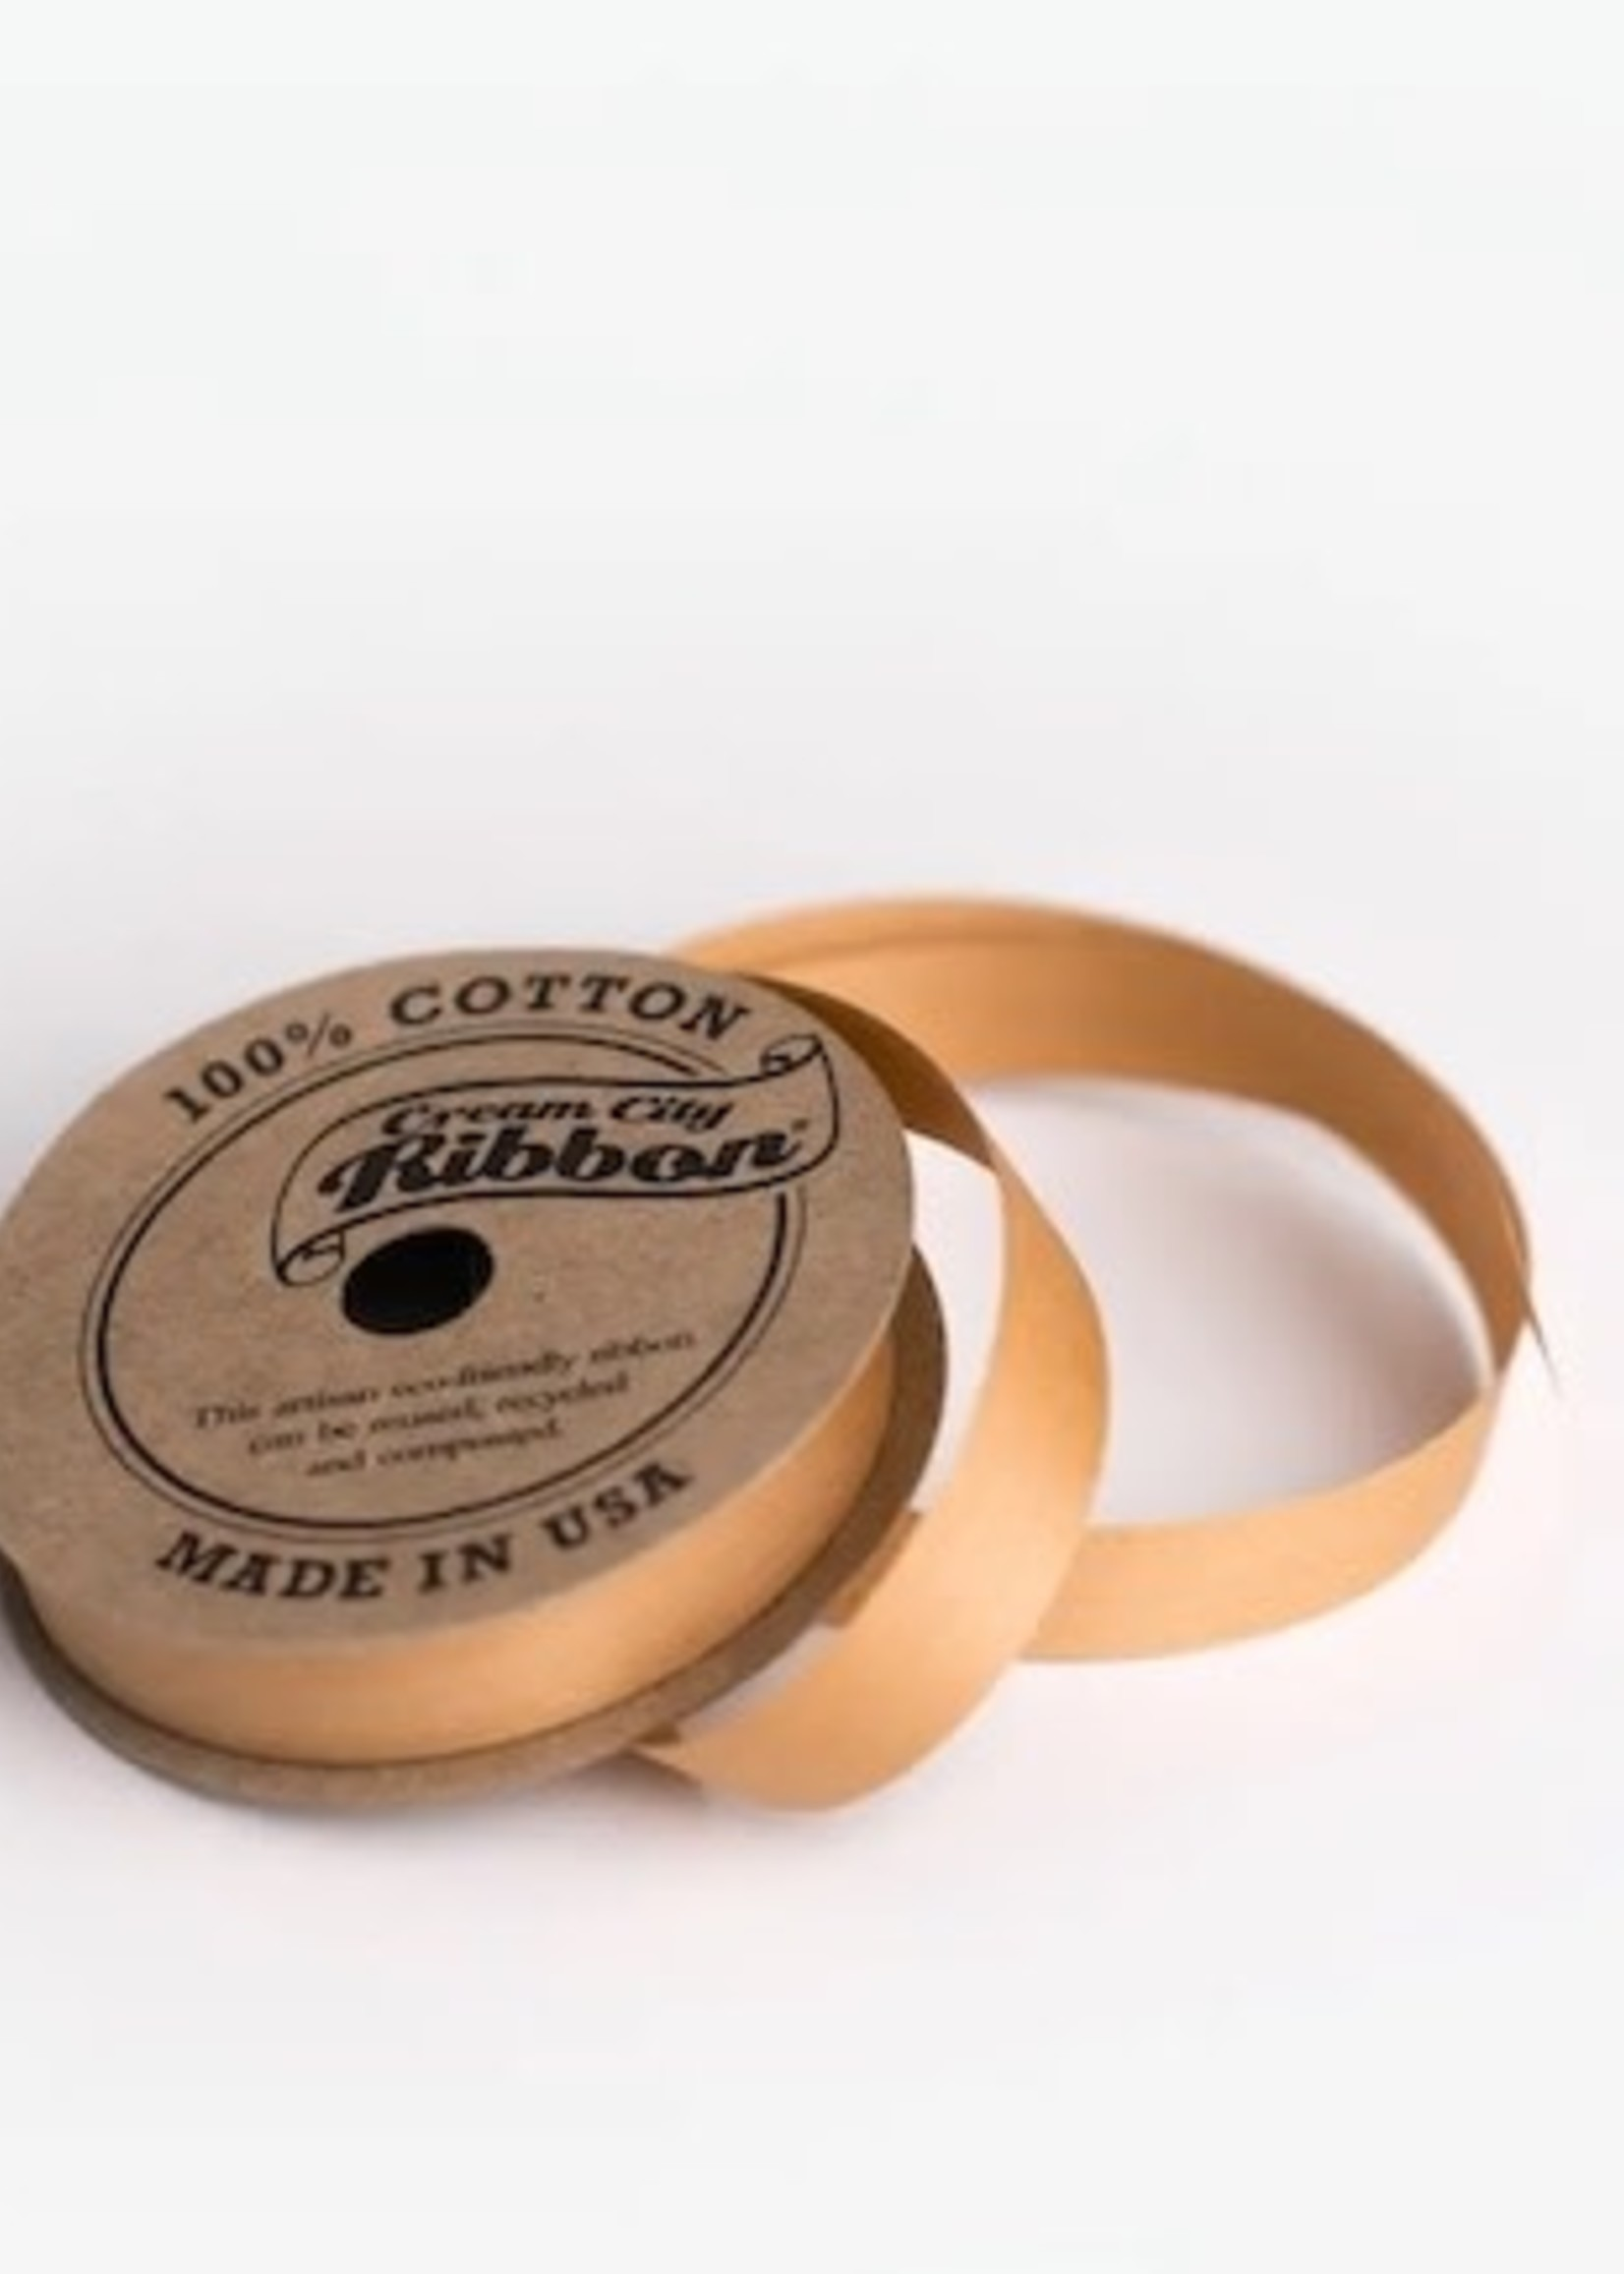 Wrappily Kraft Cotton Curling Ribbon